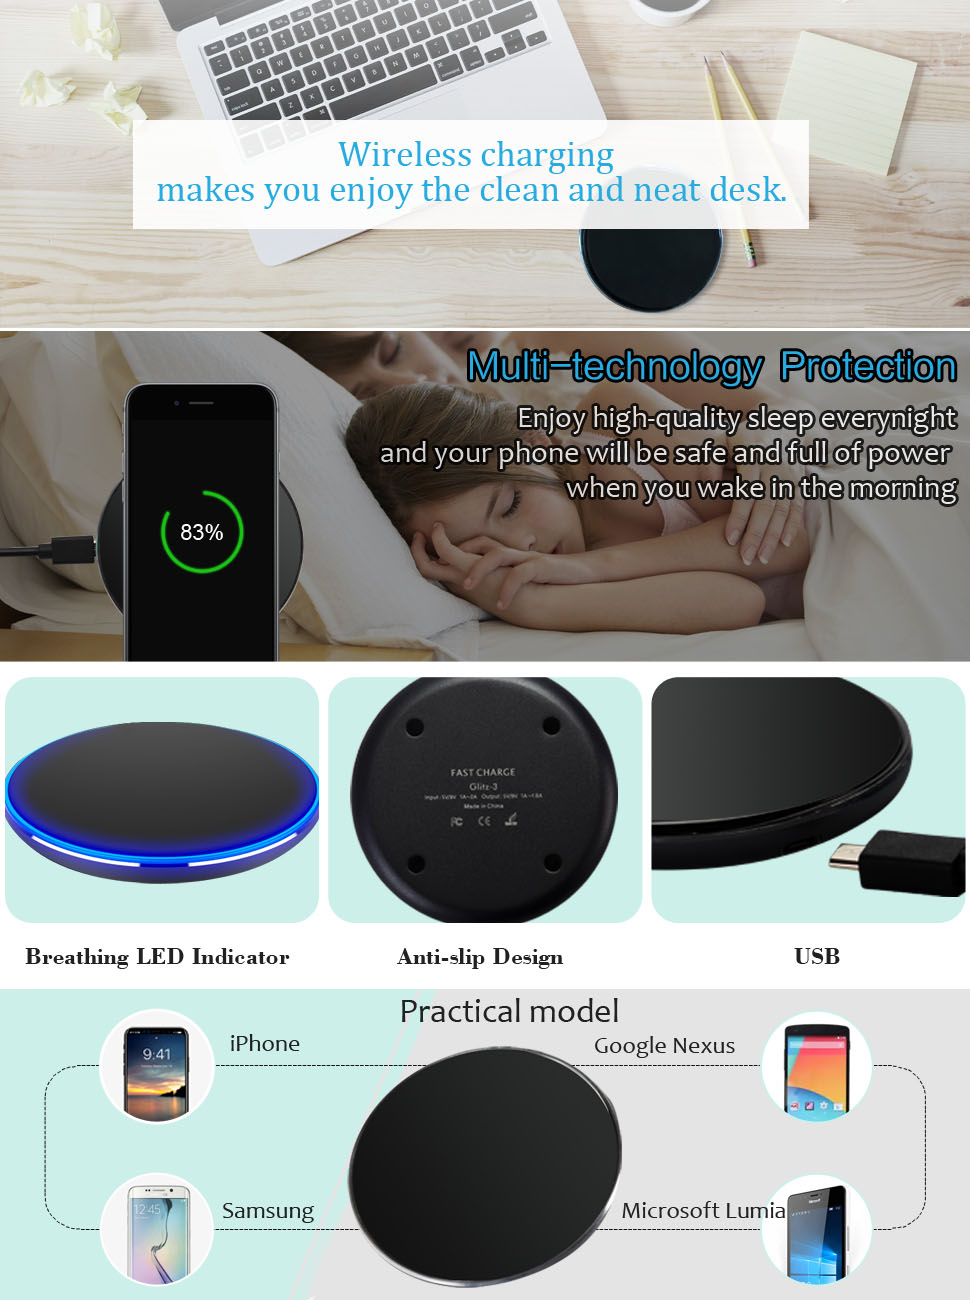 buy popular 54de0 dcf33 MiraCase Wireless Charger, Qi-Certified 10W Fast Wireless Charging Pad  Compatible with iPhone Xs/XS Max/XR/X/8/8 Plus, Nexus 5/6/7, Samsung Galaxy  ...